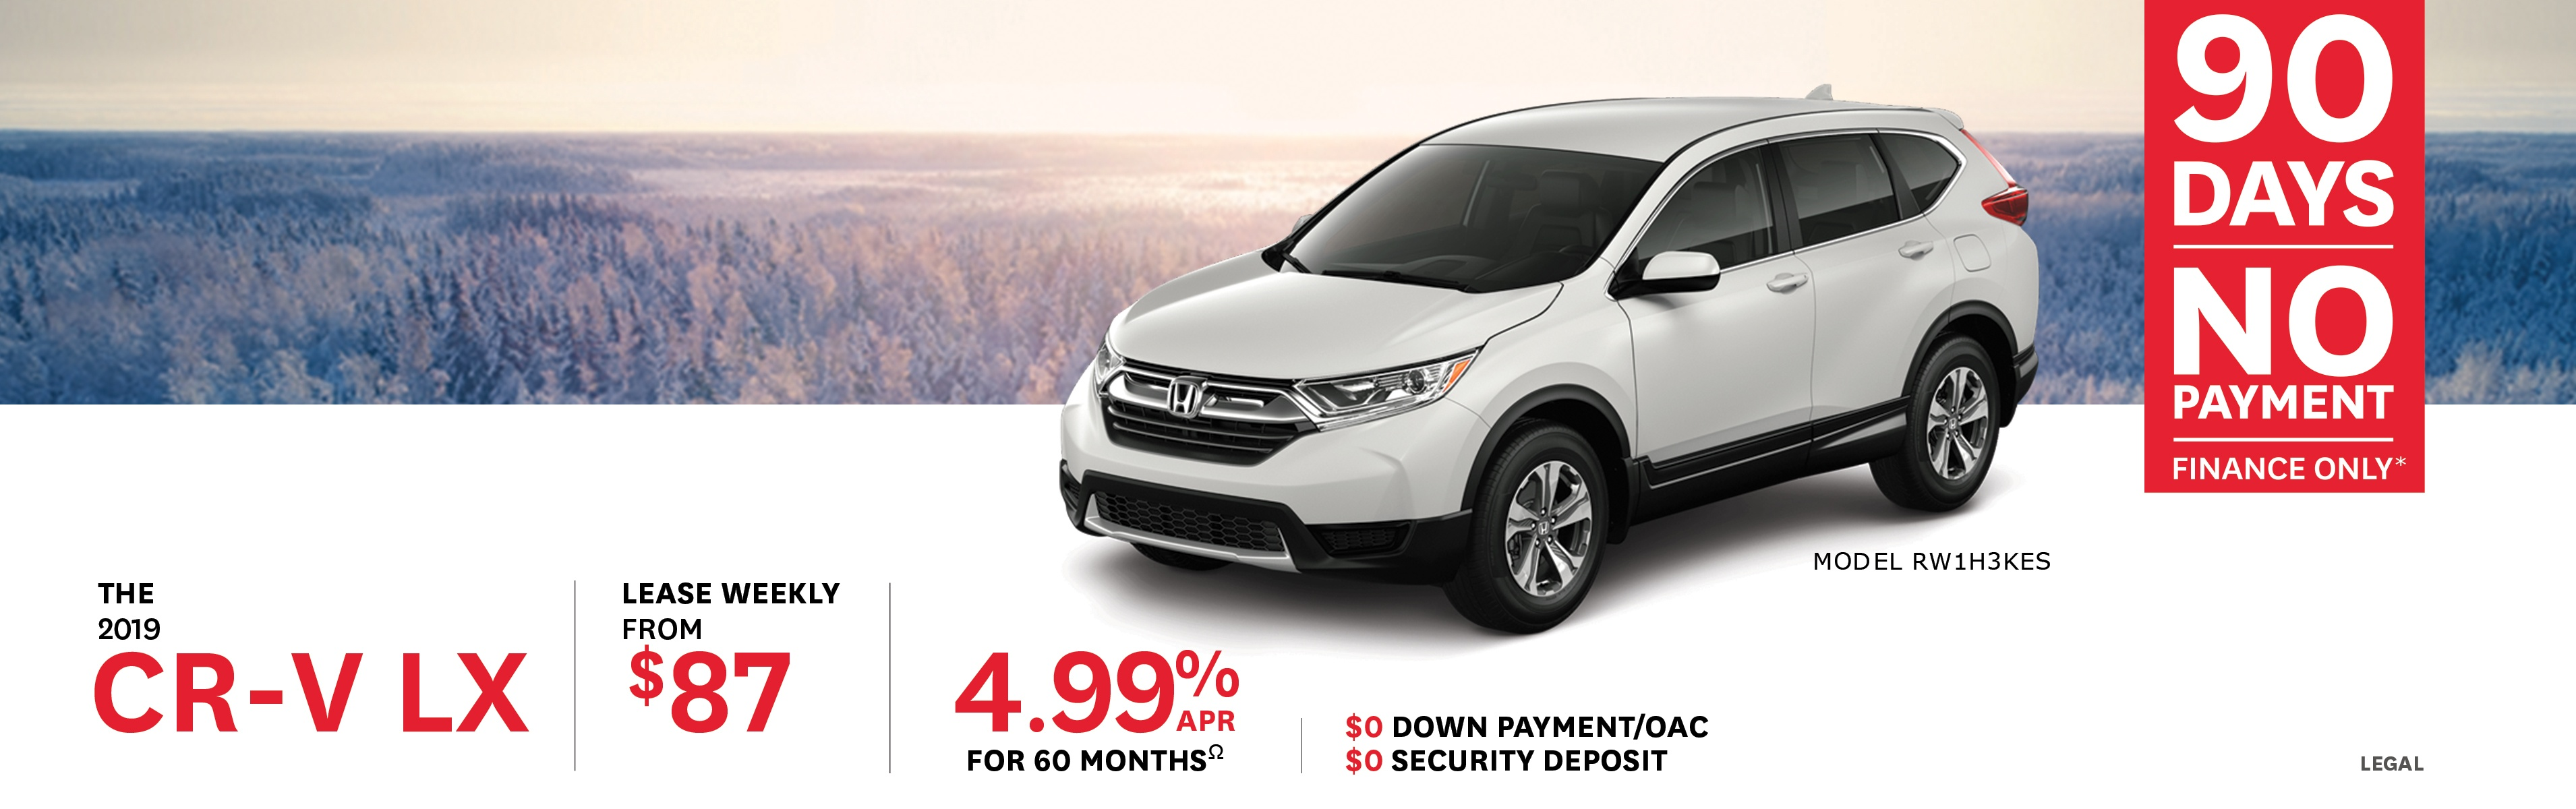 2019 CR-V from $87 Weekly